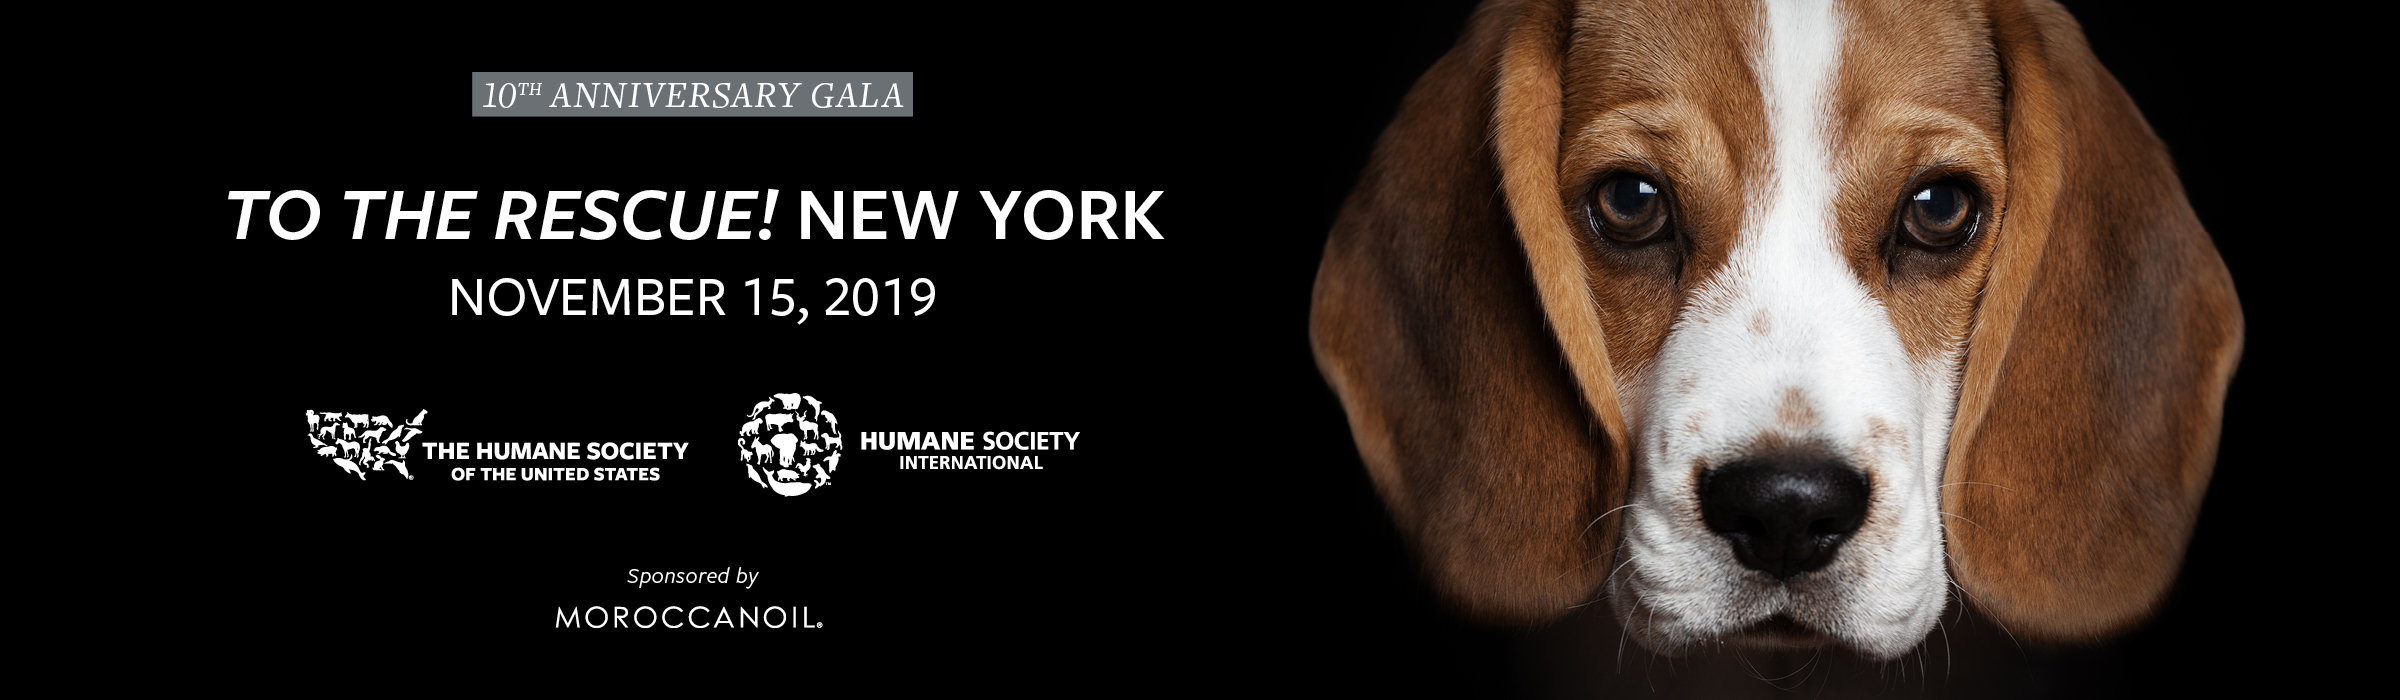 """Jerry O'Connell and Rebecca Romijn to host the Humane Society of the United States """"To the Rescue!"""" New York 10th Anniversary Gala"""